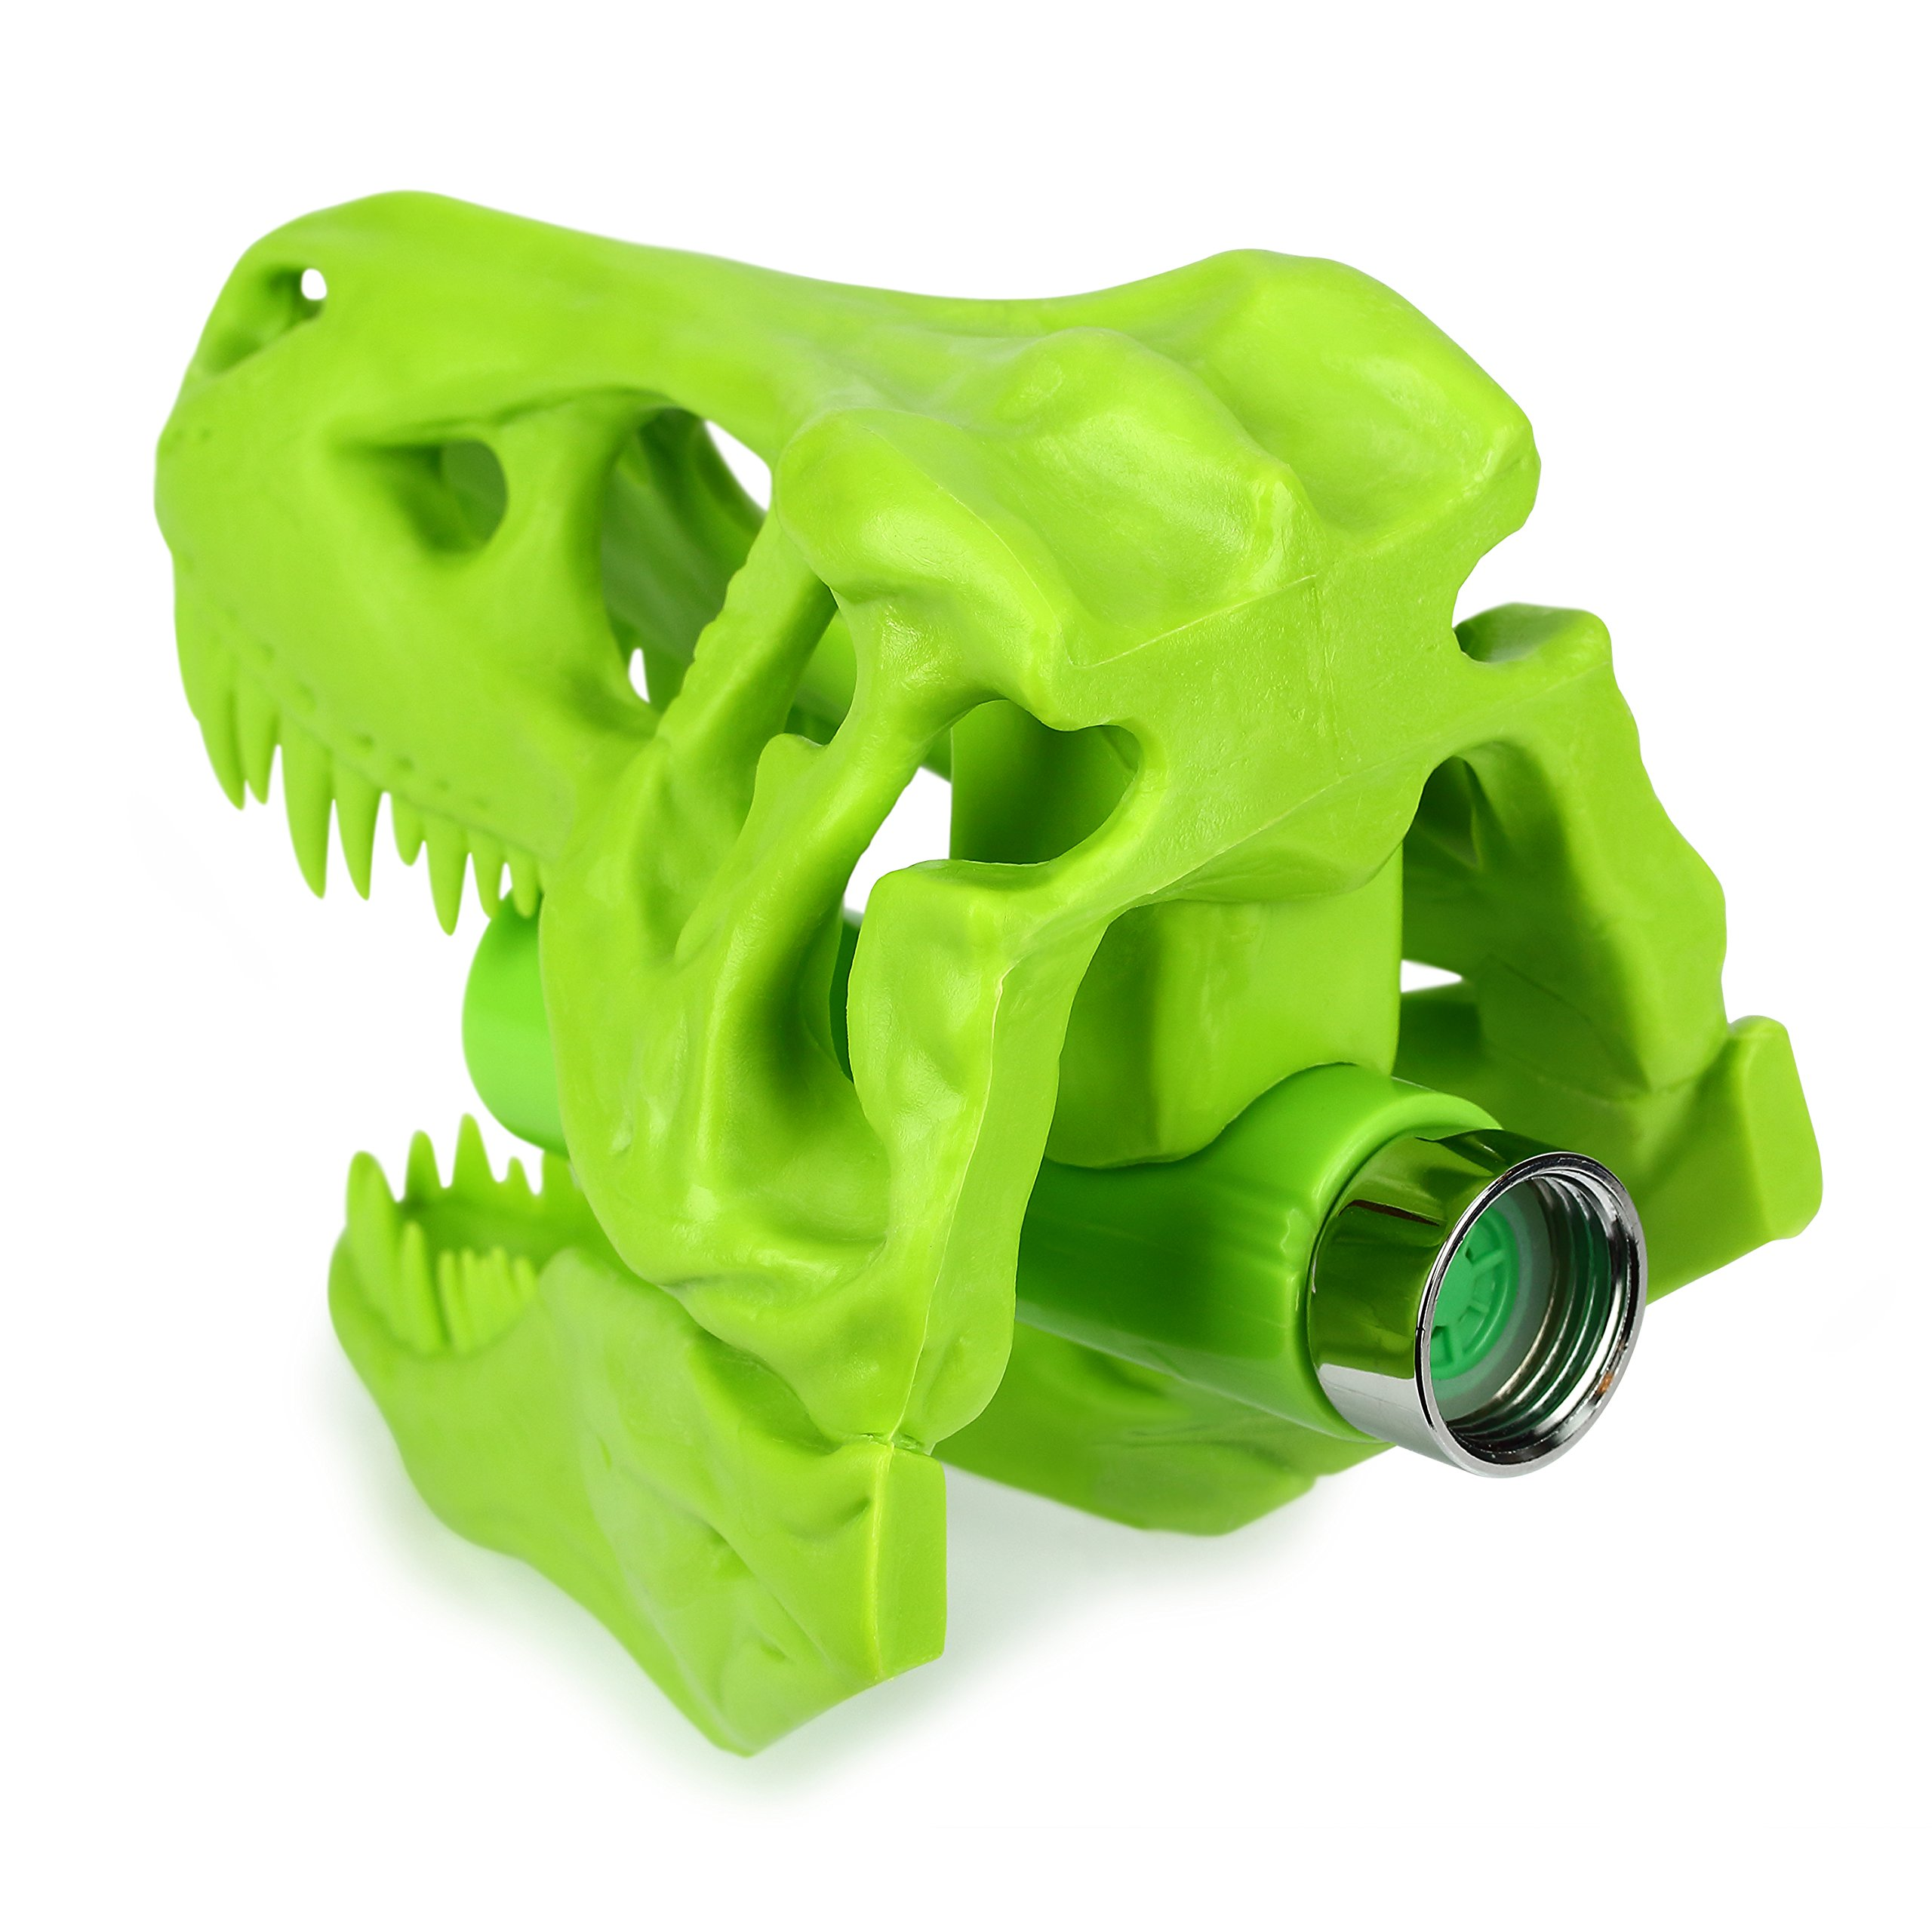 Barbuzzo T-Rex Shower Head, Green - Prehistoric Shower Nozzle Shaped like a Tyrannosaurus Rex Skull - Gives Your Shower-Time a Jurassic Touch - Terrific Gift for Kids & Dino-Enthusiasts - Wash N' Roar by Barbuzzo (Image #5)